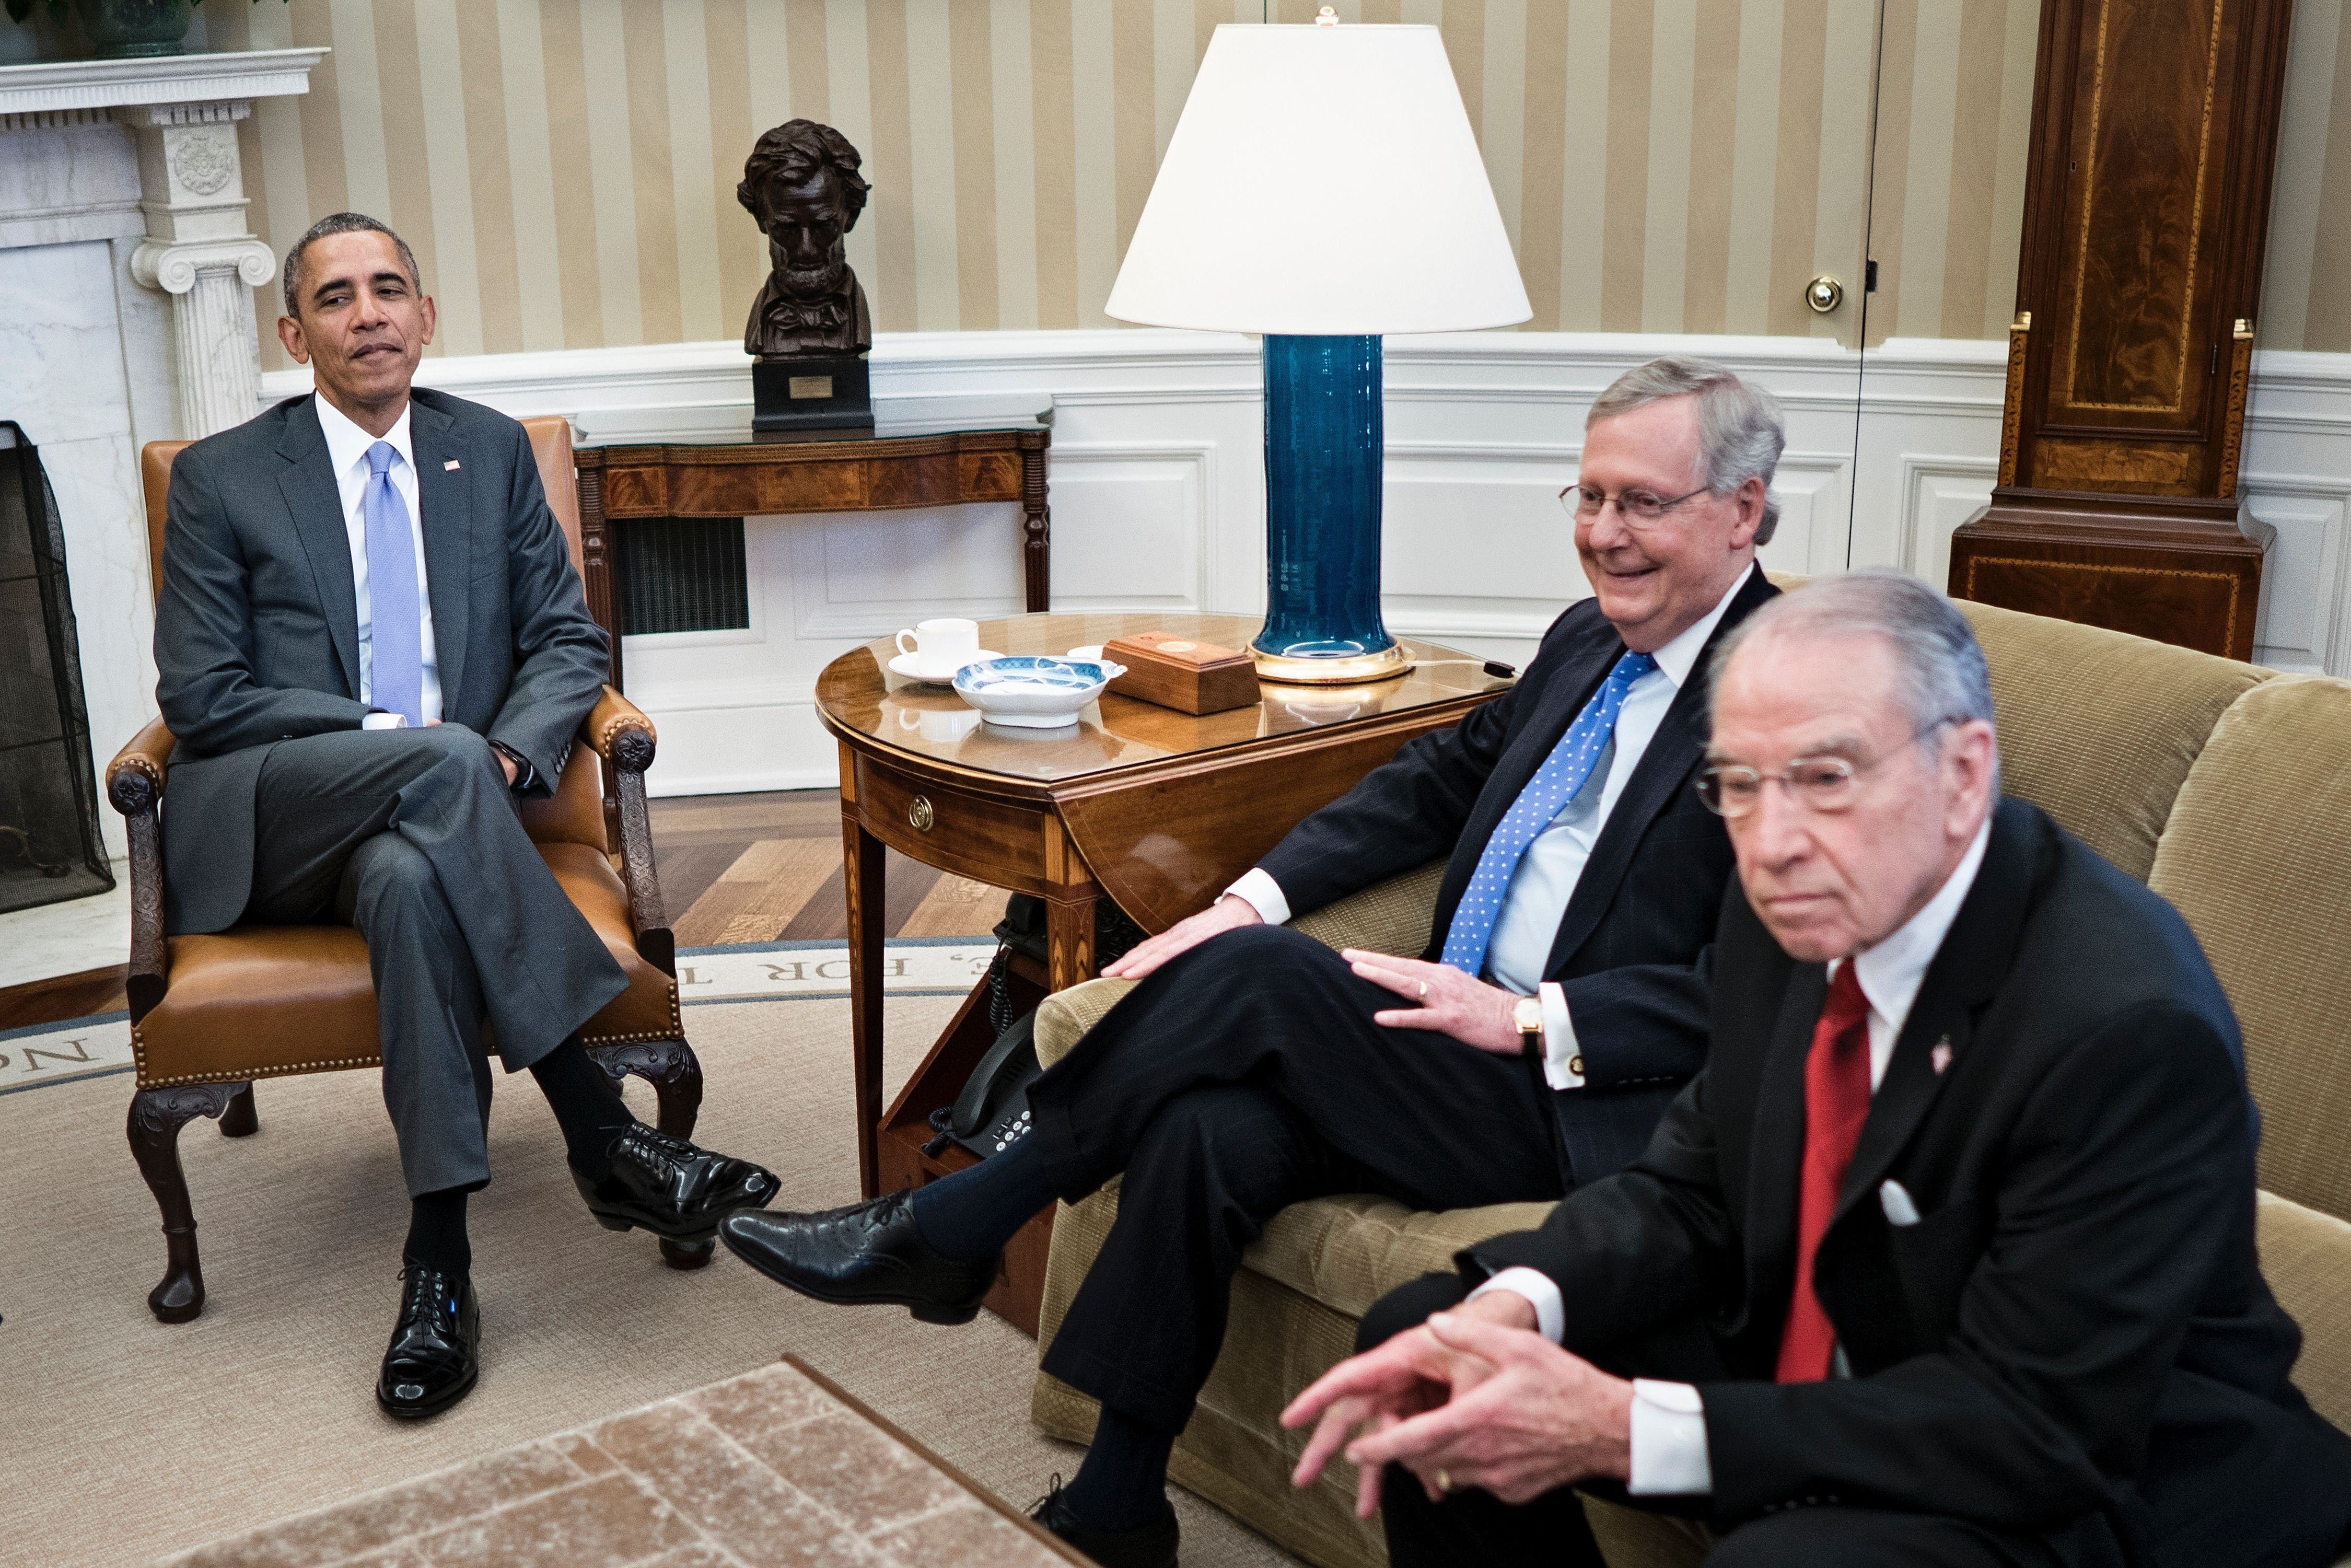 From left: US President Barack Obama, Senate Majority Leader Senator Mitch McConnell (R-KY) and Senator Chuck Grassley (R-IA) wait to begin a meeting about the Supreme Court vacancy in the Oval Office of the White House March 1, 2016 in Washington, DC. / AFP / Brendan Smialowski        (Photo credit should read BRENDAN SMIALOWSKI/AFP/Getty Images)